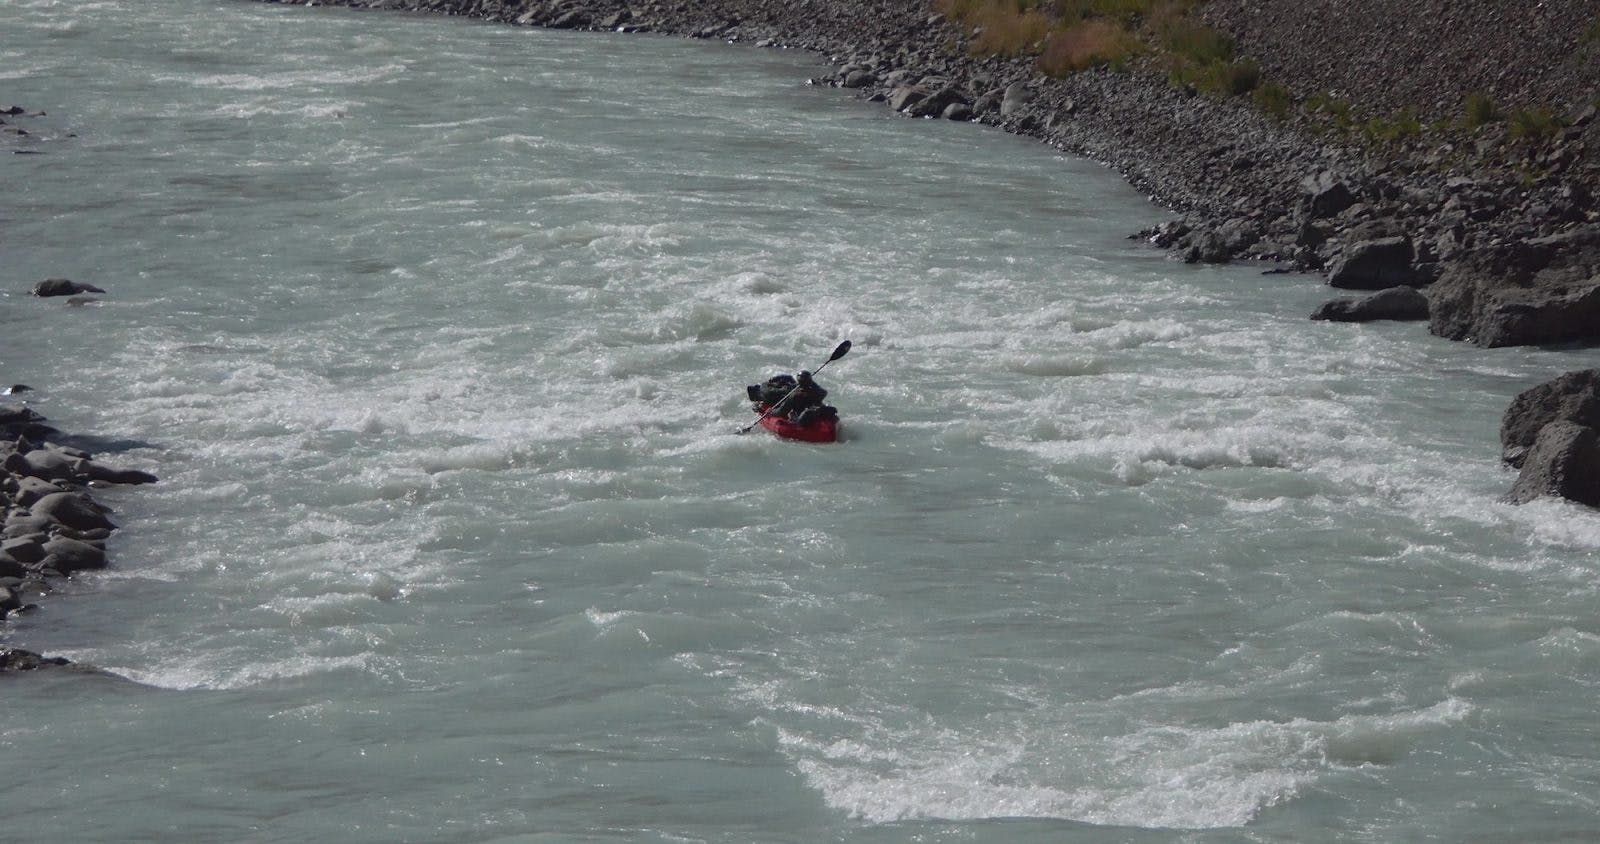 Mike McGrath pack rafting the Naryn River, Kyrgyzstan.